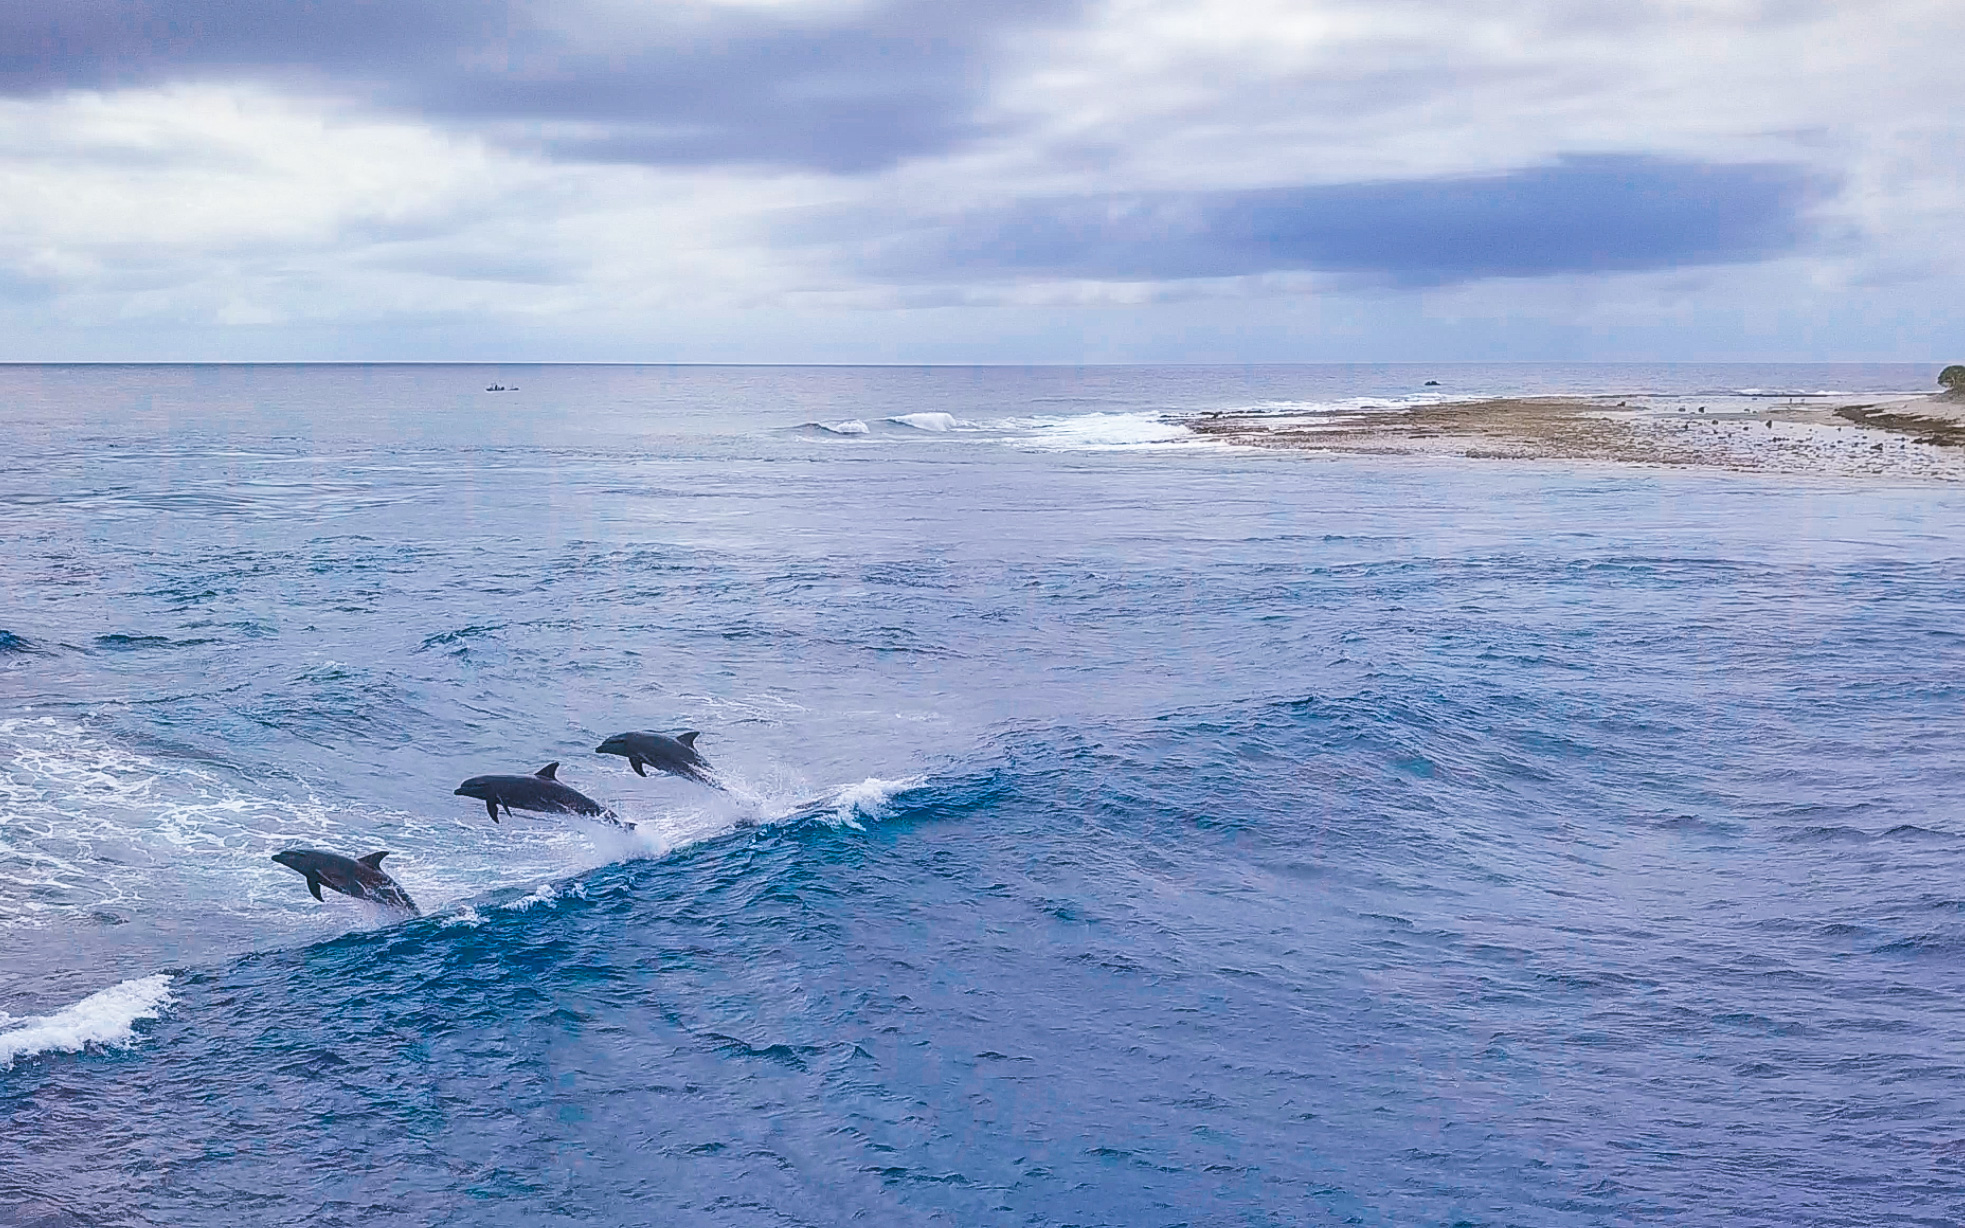 Watch the Dolphins play -